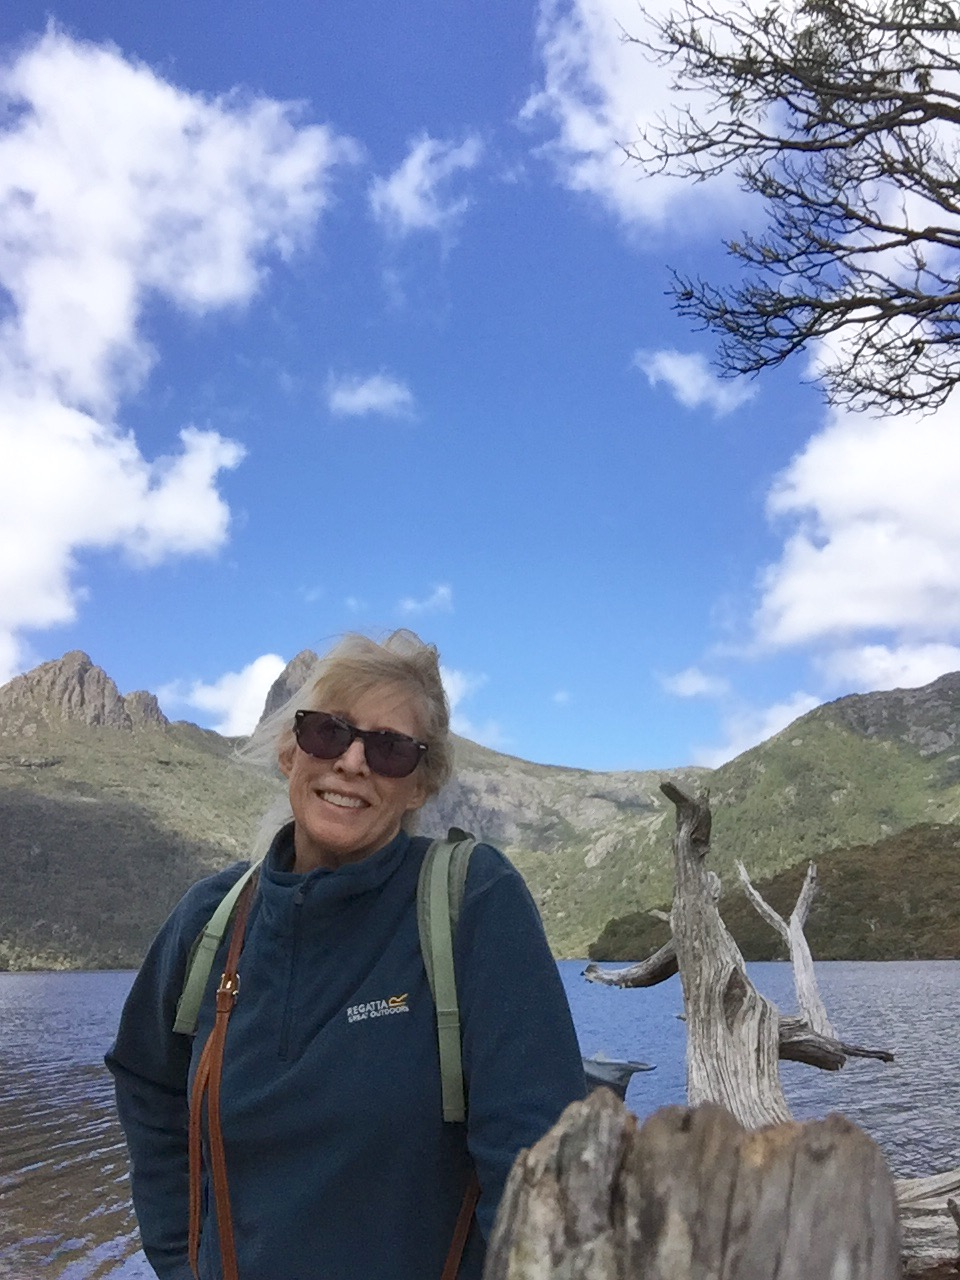 That's me on a day hike around Dove Lake, at the base of Cradle Mountain, Tasmania.